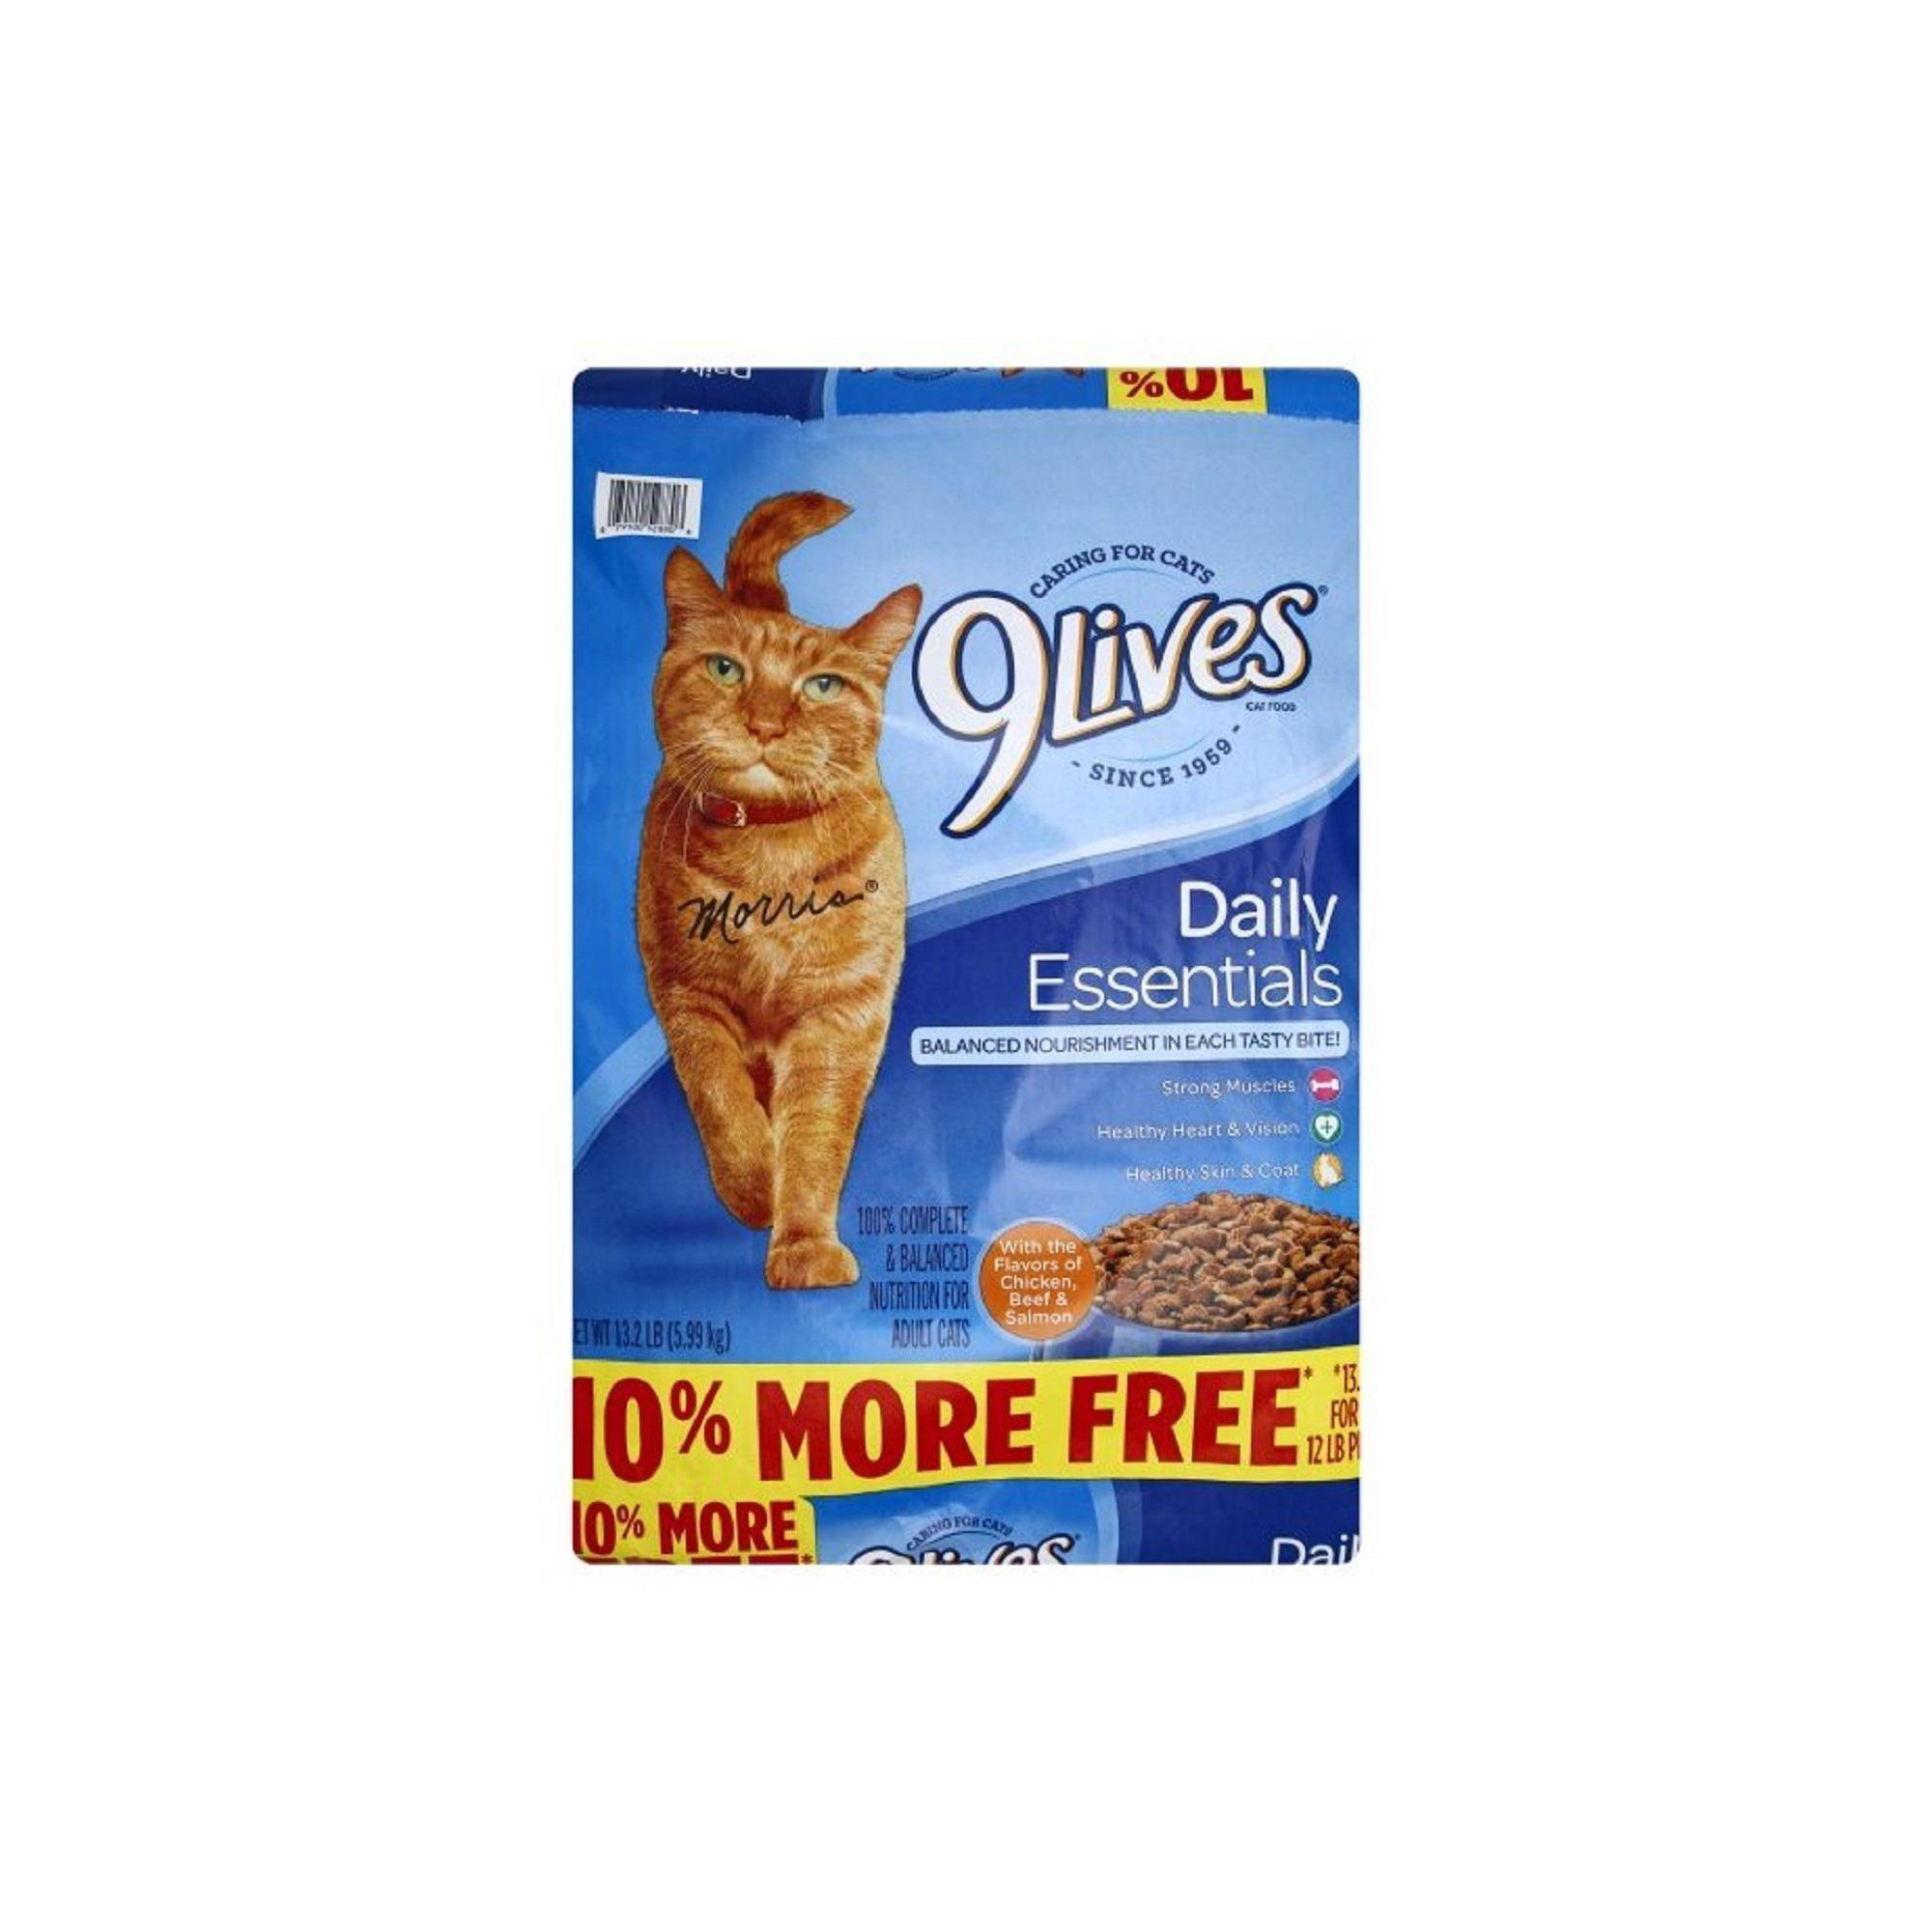 9lives Daily Essentials Salmon Chicken Beef Dry Cat Food